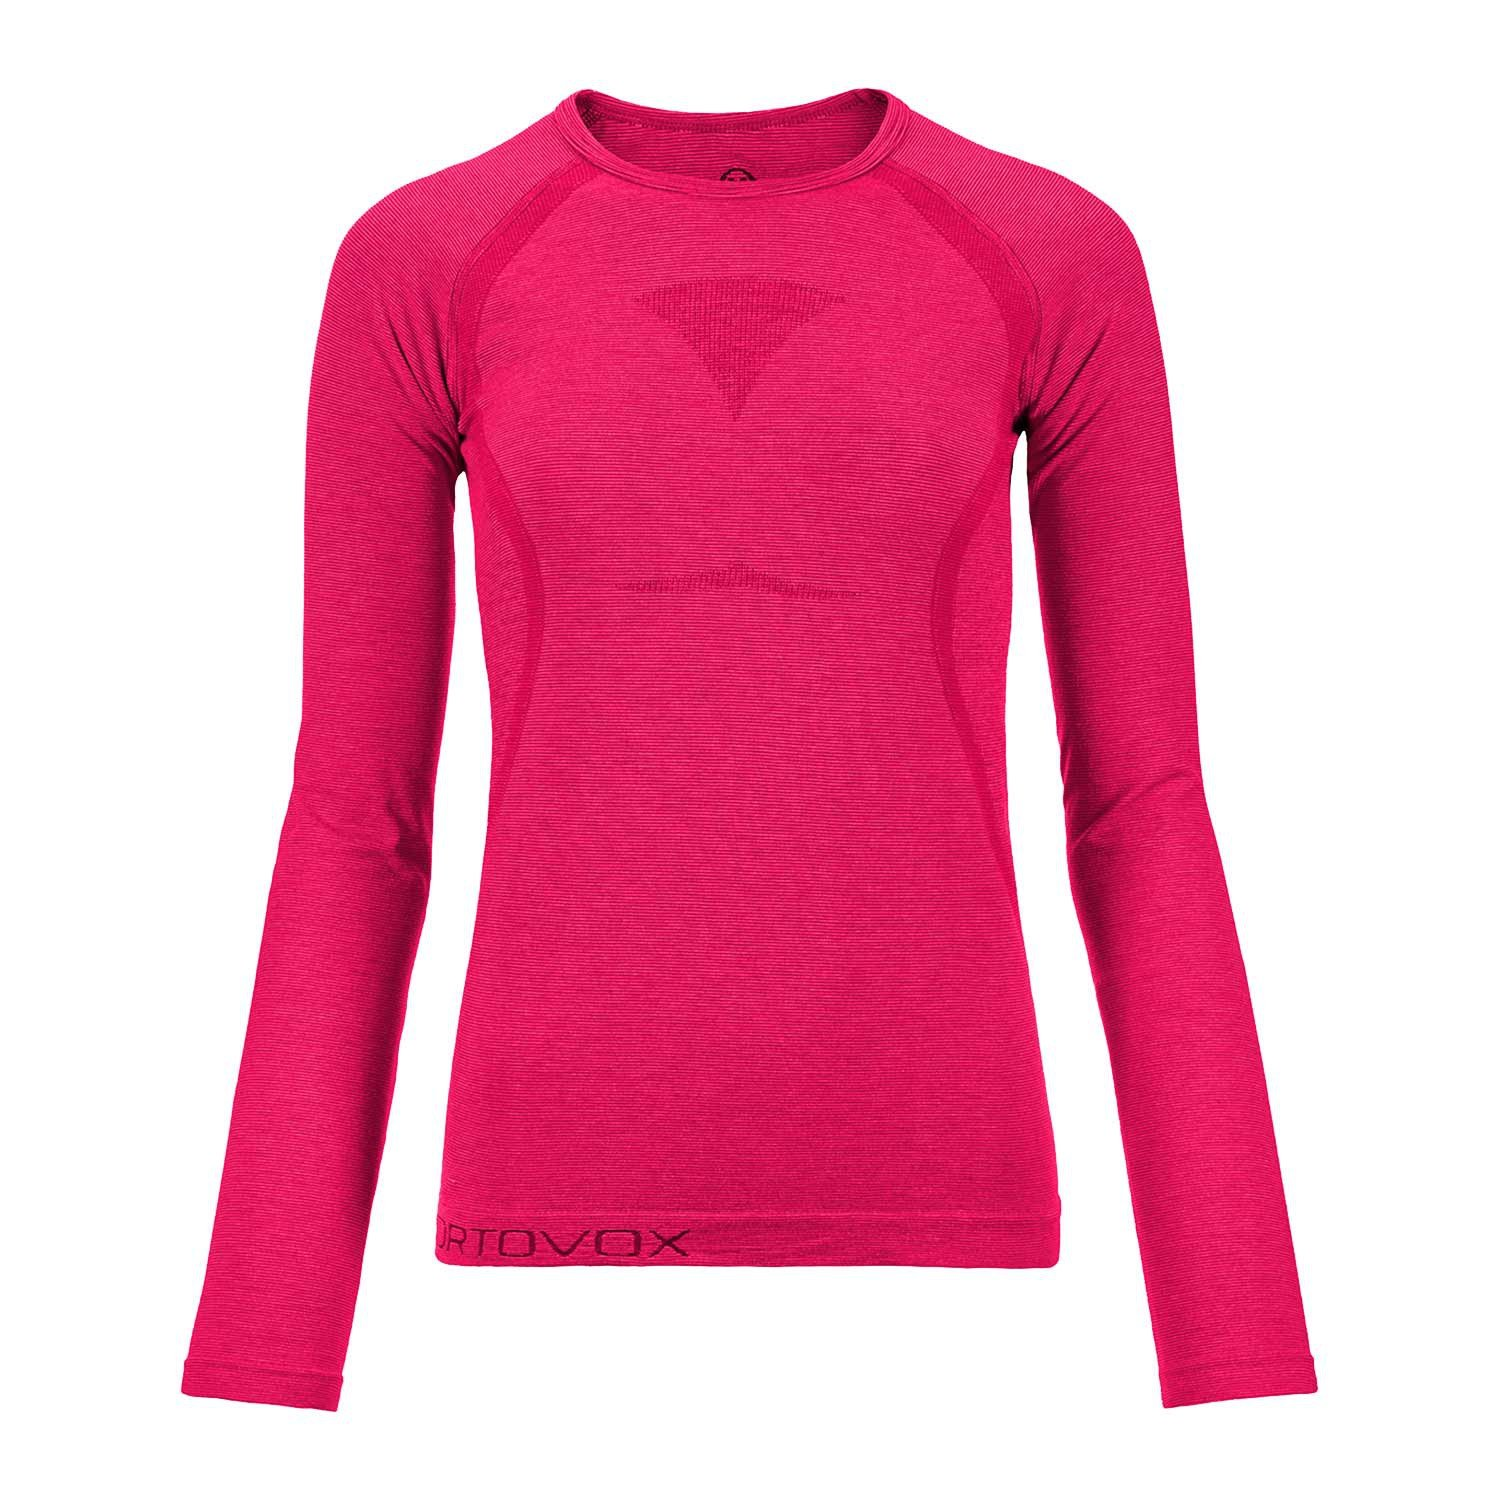 Ortovox Damen langärmliges Shirt Merino Competition Cool